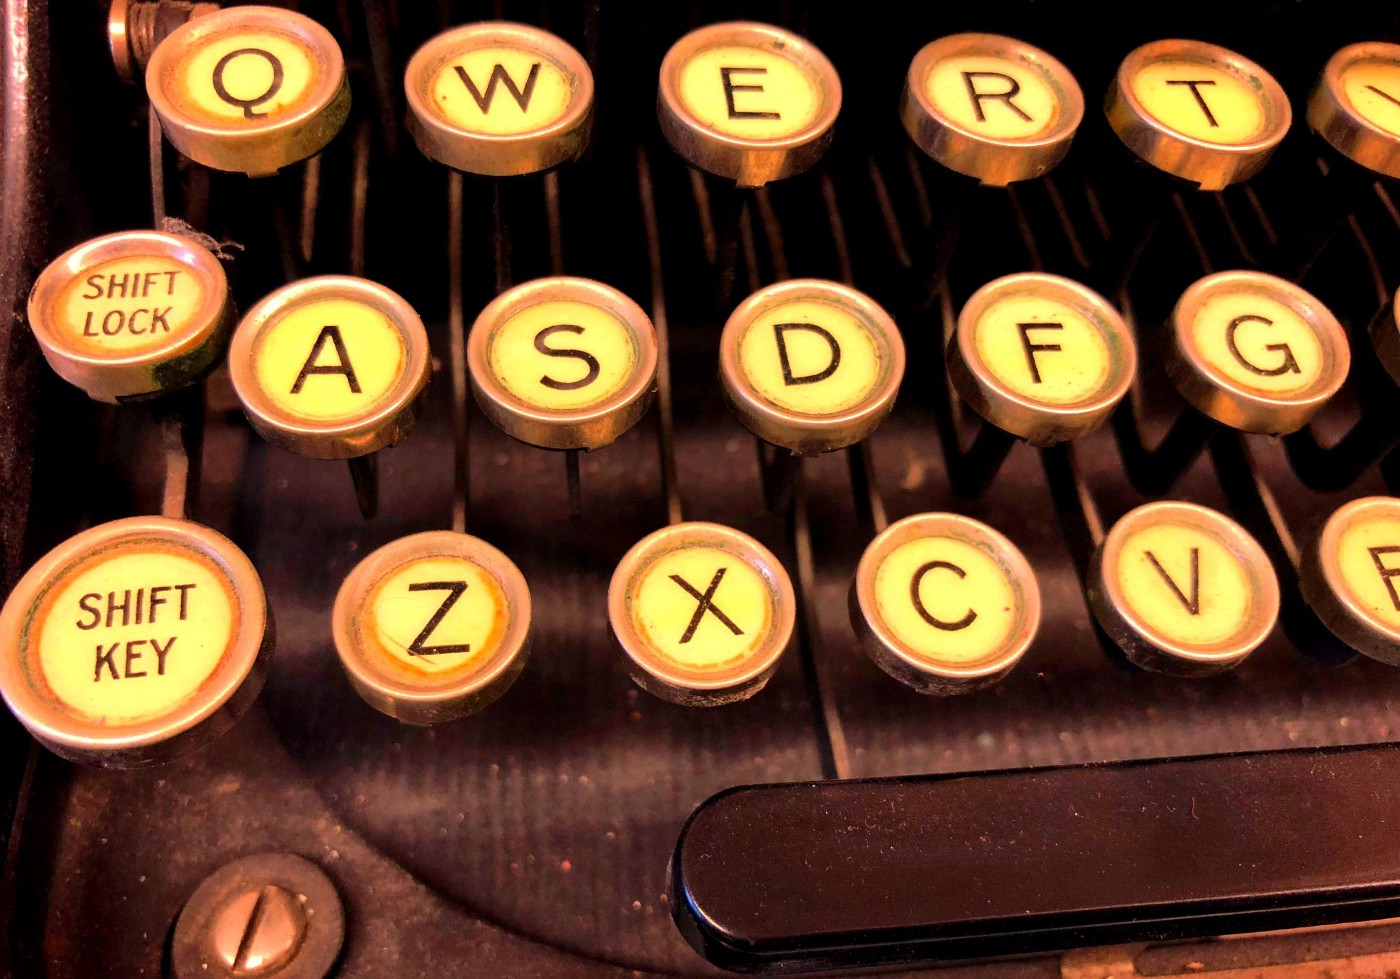 How to capitalize the first letter of each word in presto. This is an image of an old typewriter.